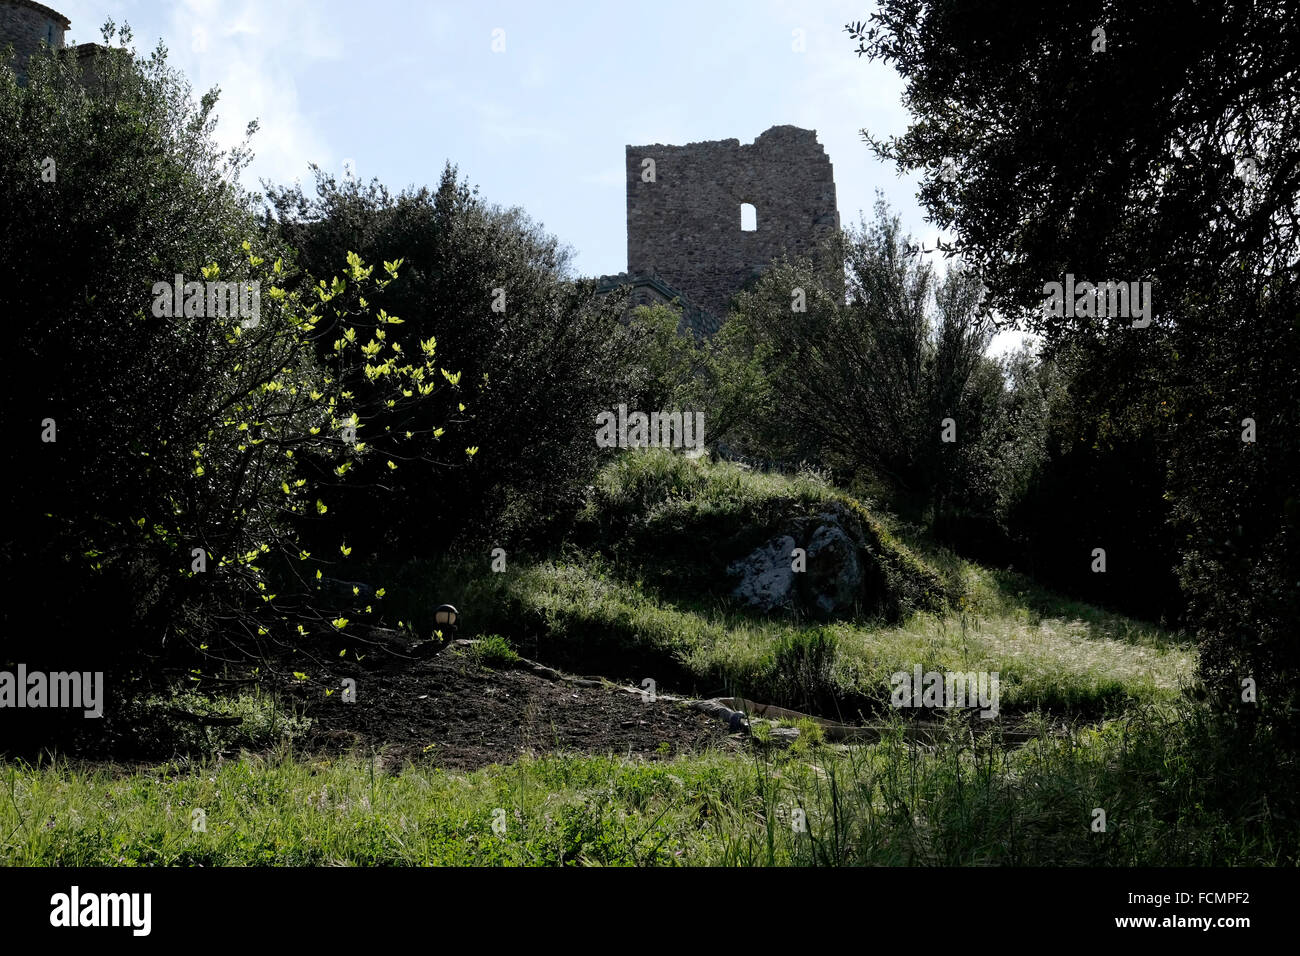 The ruined castle at Grimaud, South of France. - Stock Image